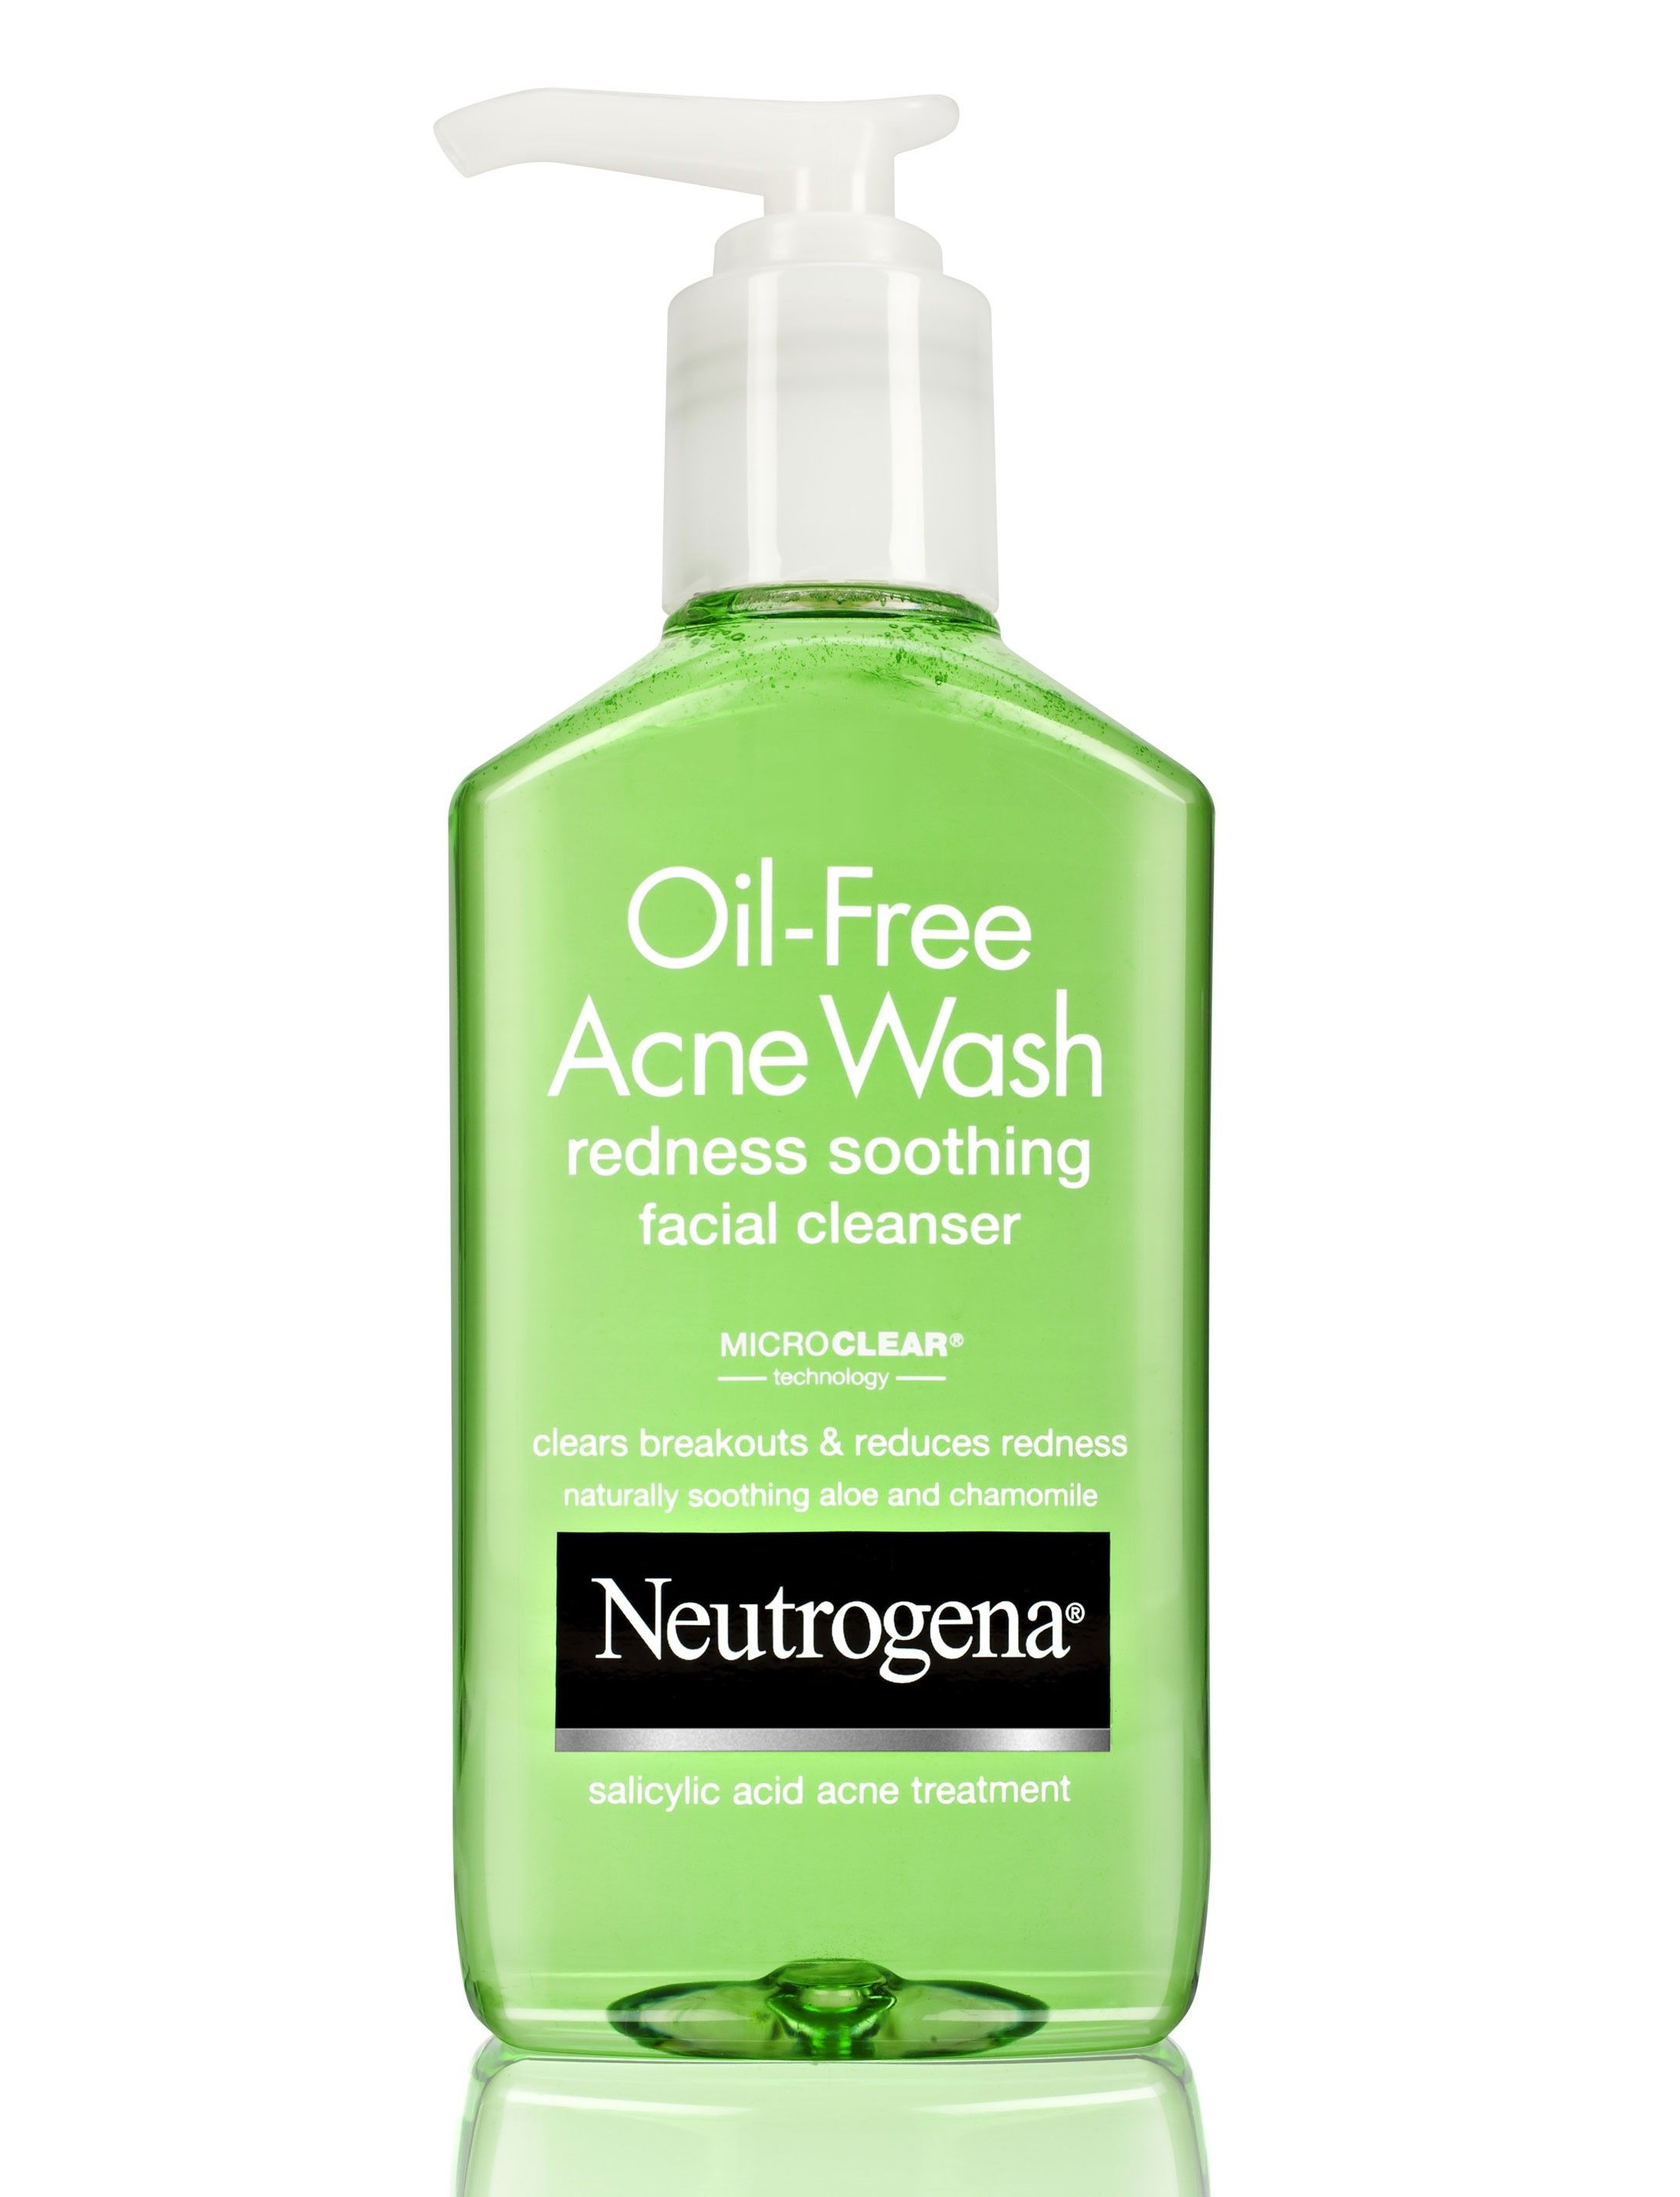 Slideshow The Best Products For Acne Prone Skin Acne Wash Oil